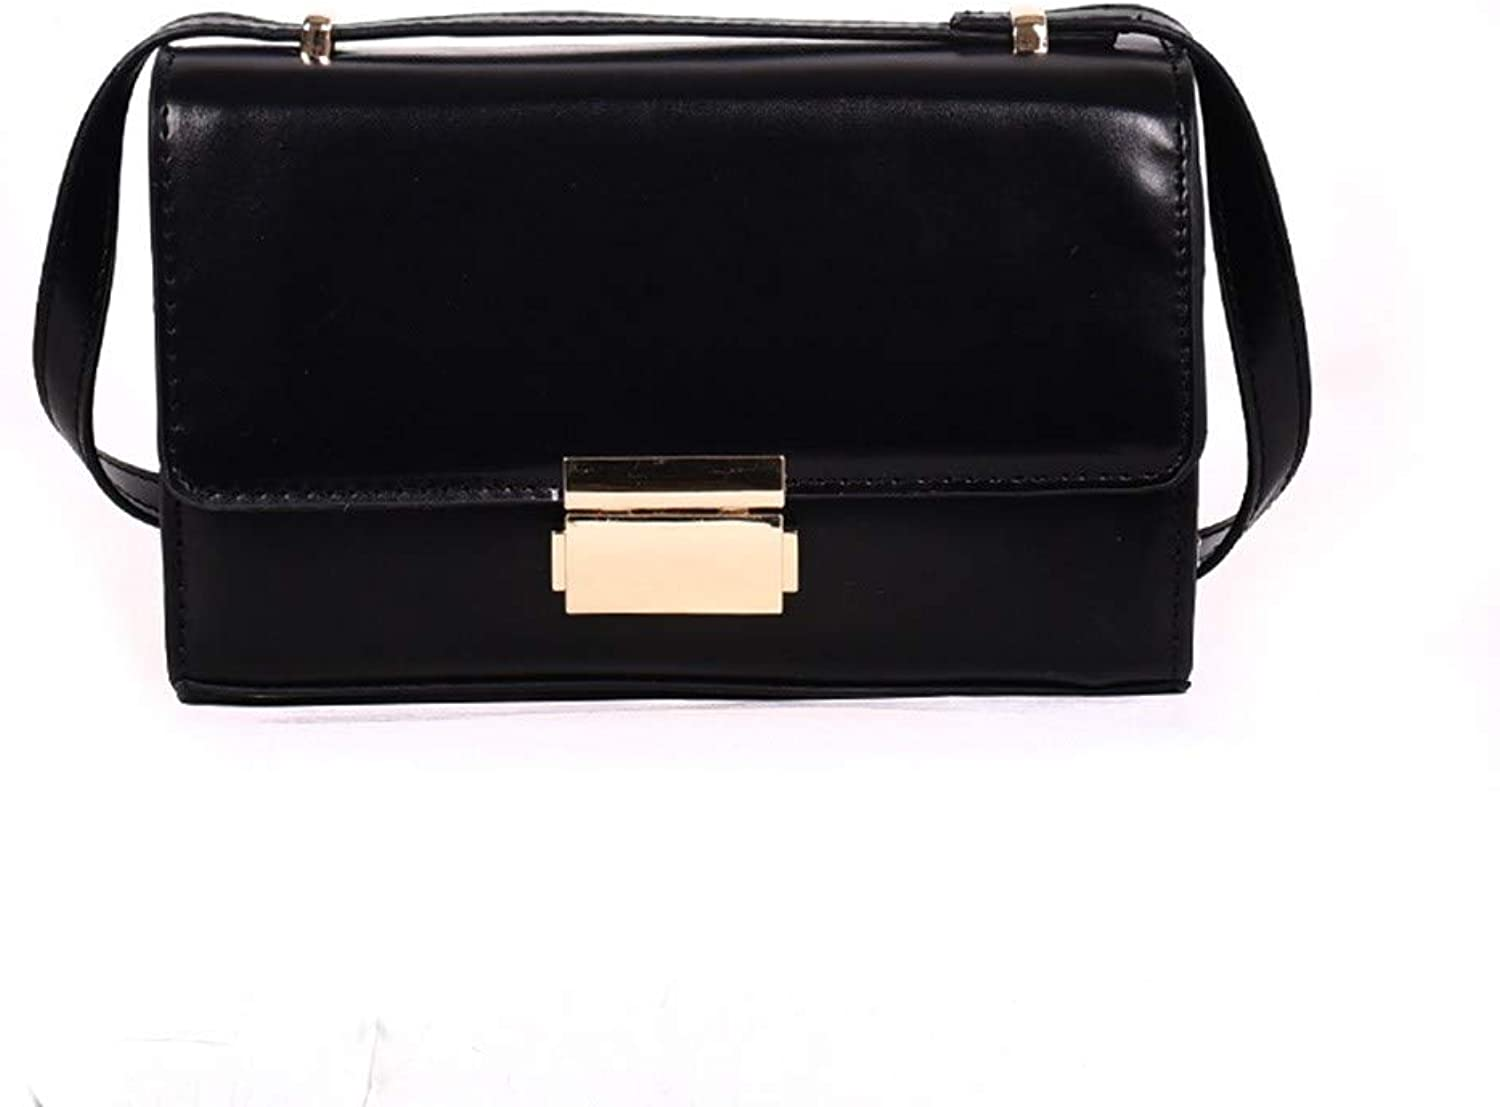 H-M-STUDIO New Autumn and Winter Wild Solid color Retro Messenger Bag Black 21  14  7Cm